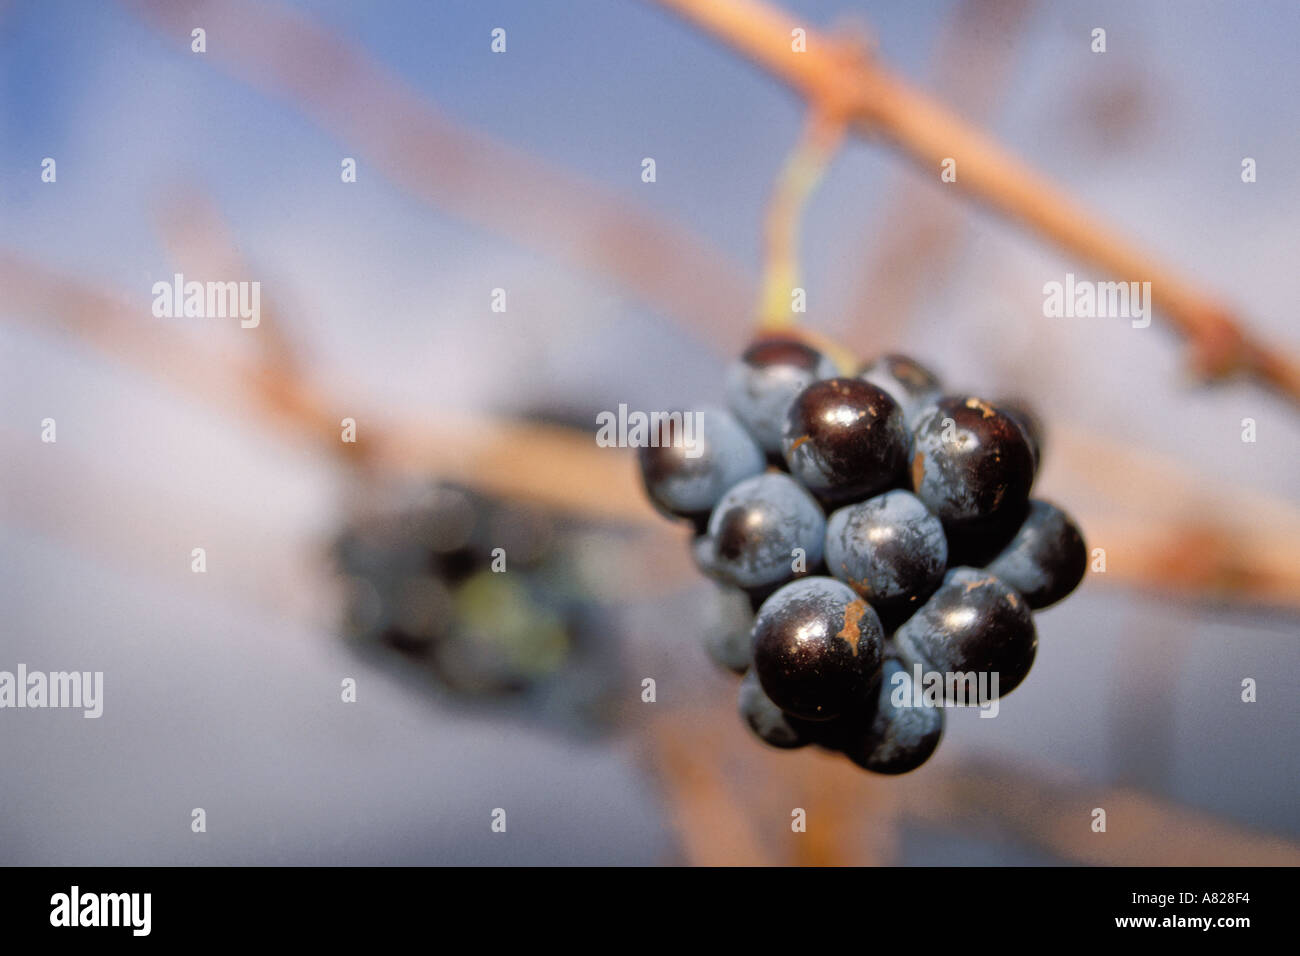 South Africa, Stellenbosch, Grapes on the vine Stock Photo